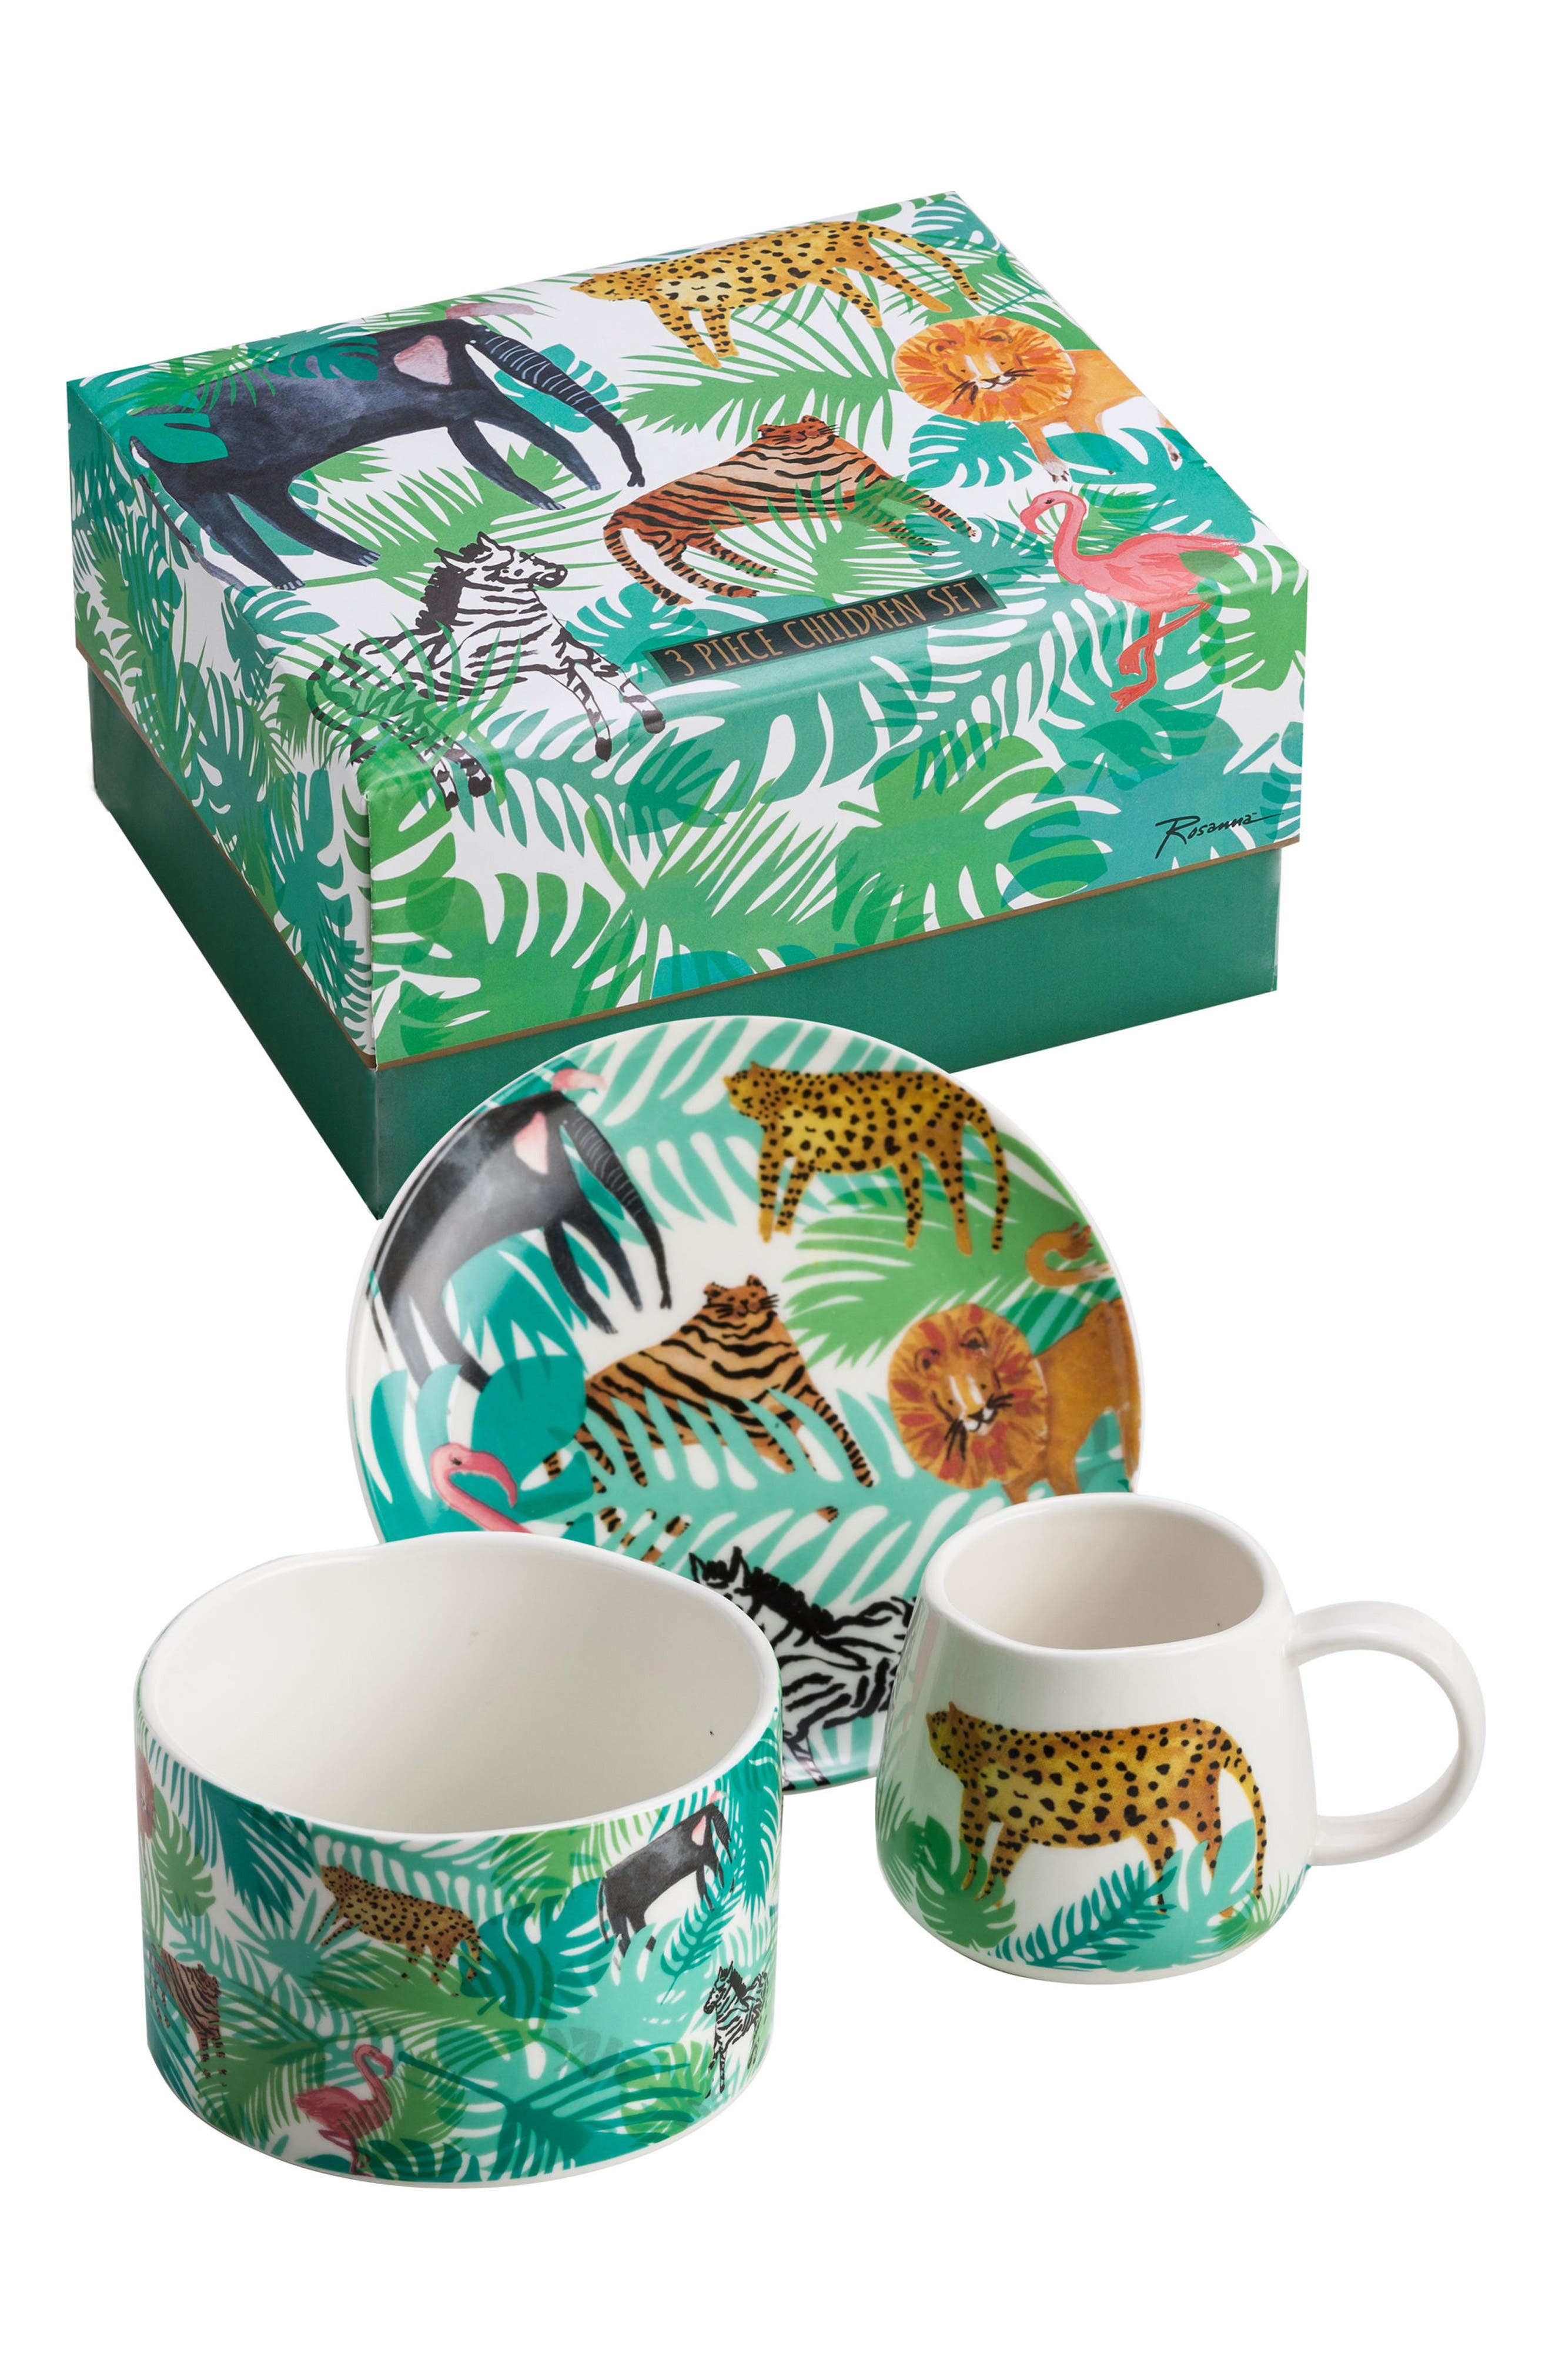 Main Image - Rosanna Be Wild 3-Piece Children's Place Setting